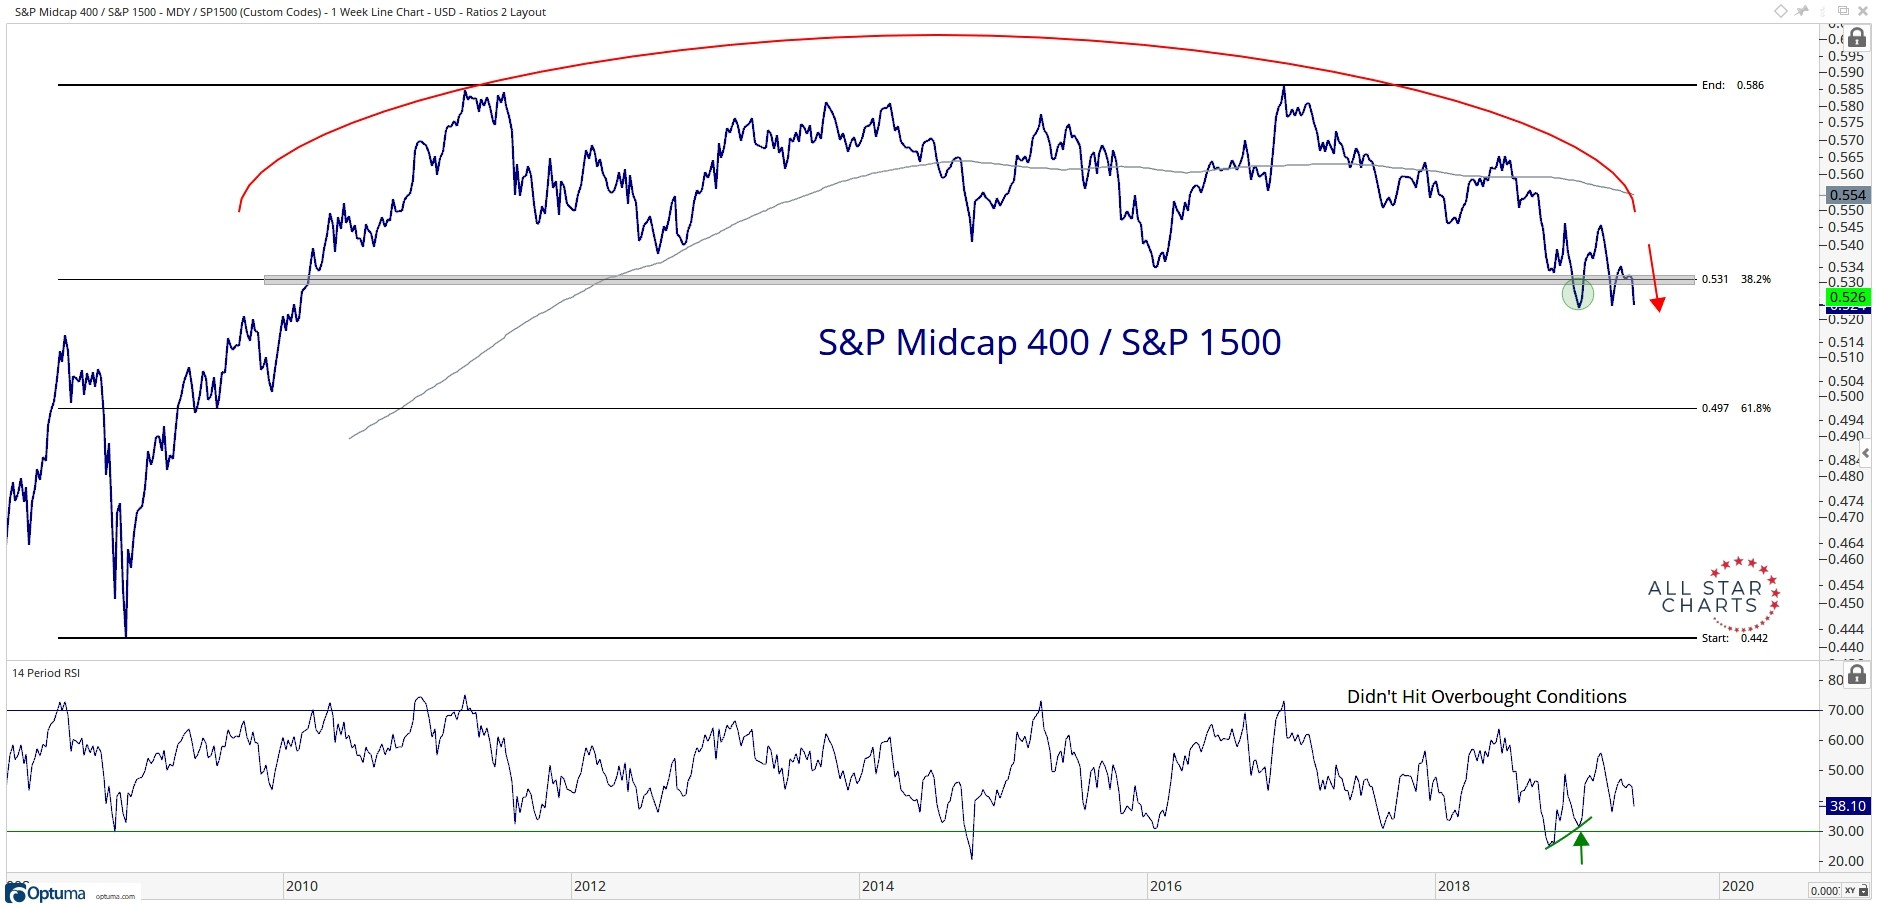 Ten-year history of the performance of the S&P MidCap 400 Index relative to the S&P 1500 Index.